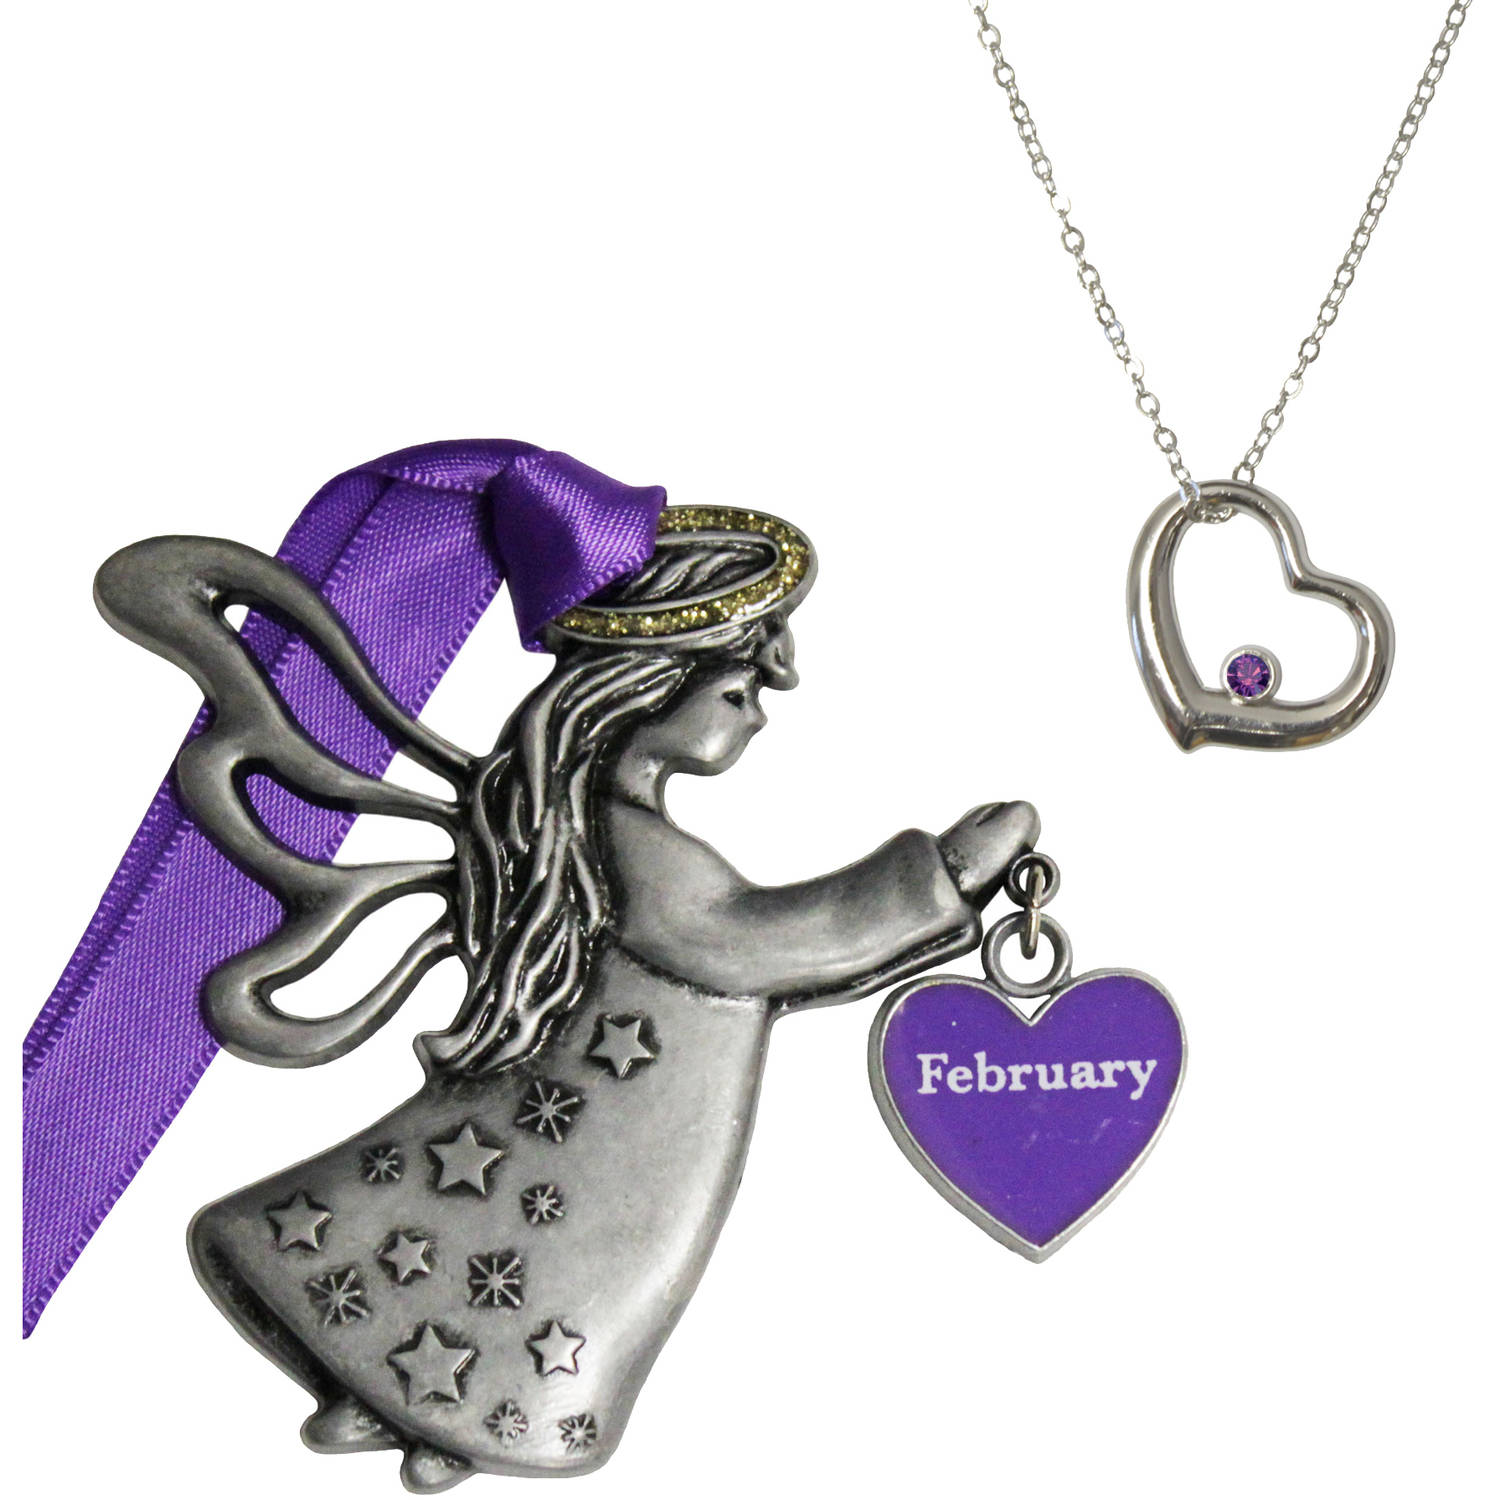 February Birthstone Angel Ornament and Necklace Set